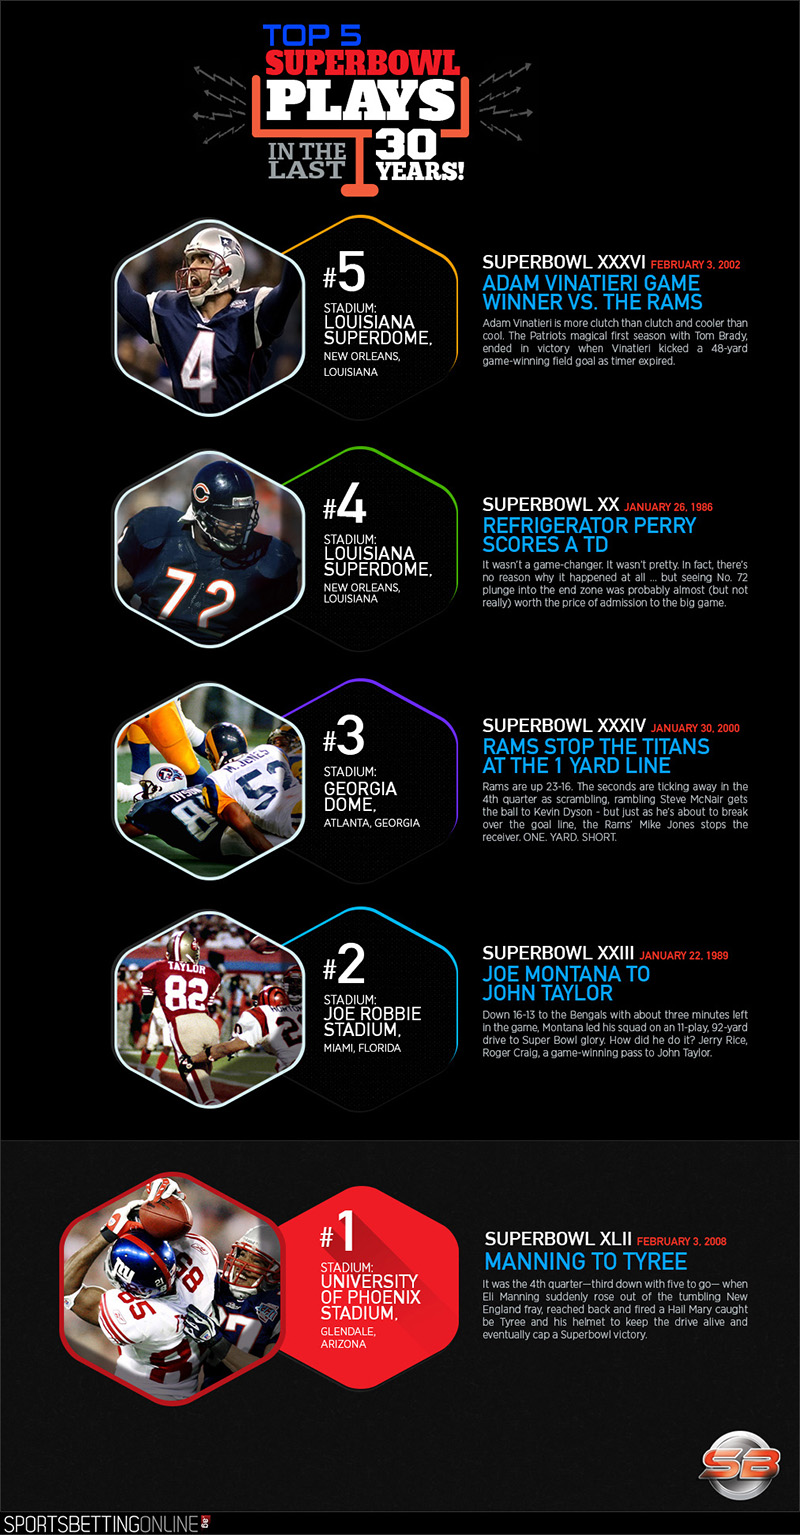 Top 5 Plays in the Last 30 Years of NFL Super Bowl History - Infographics by SportsBettingOnline.ag